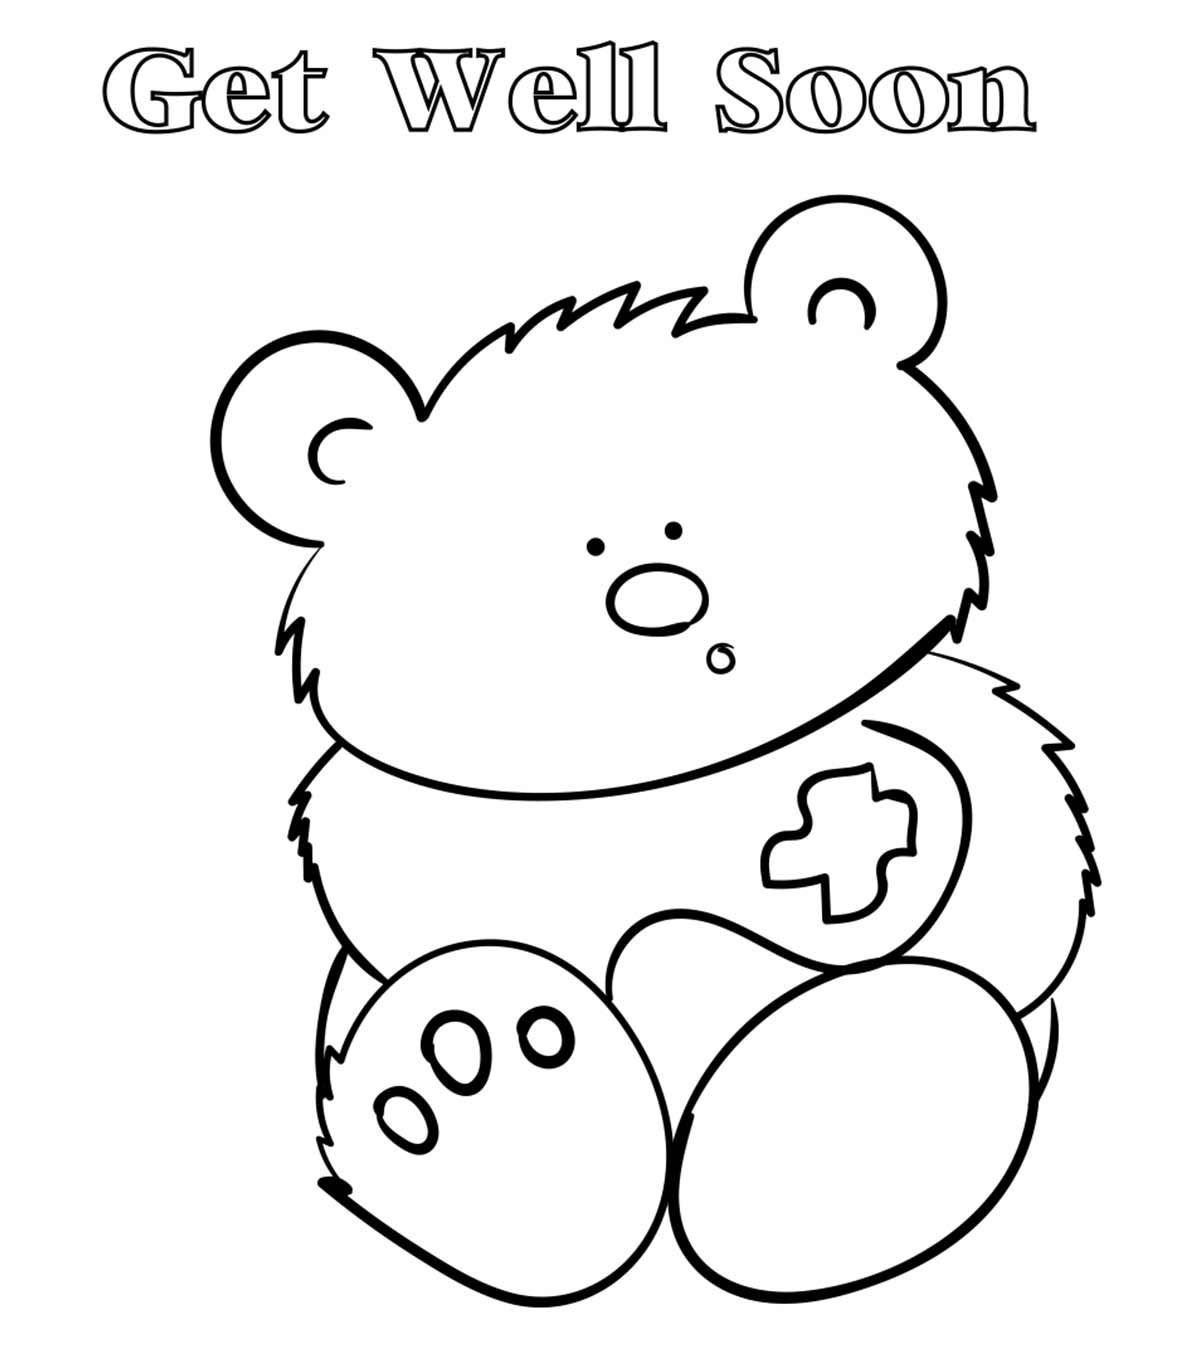 get well soon printable coloring cards get well soon coloring pages to download and print for free coloring soon well get cards printable